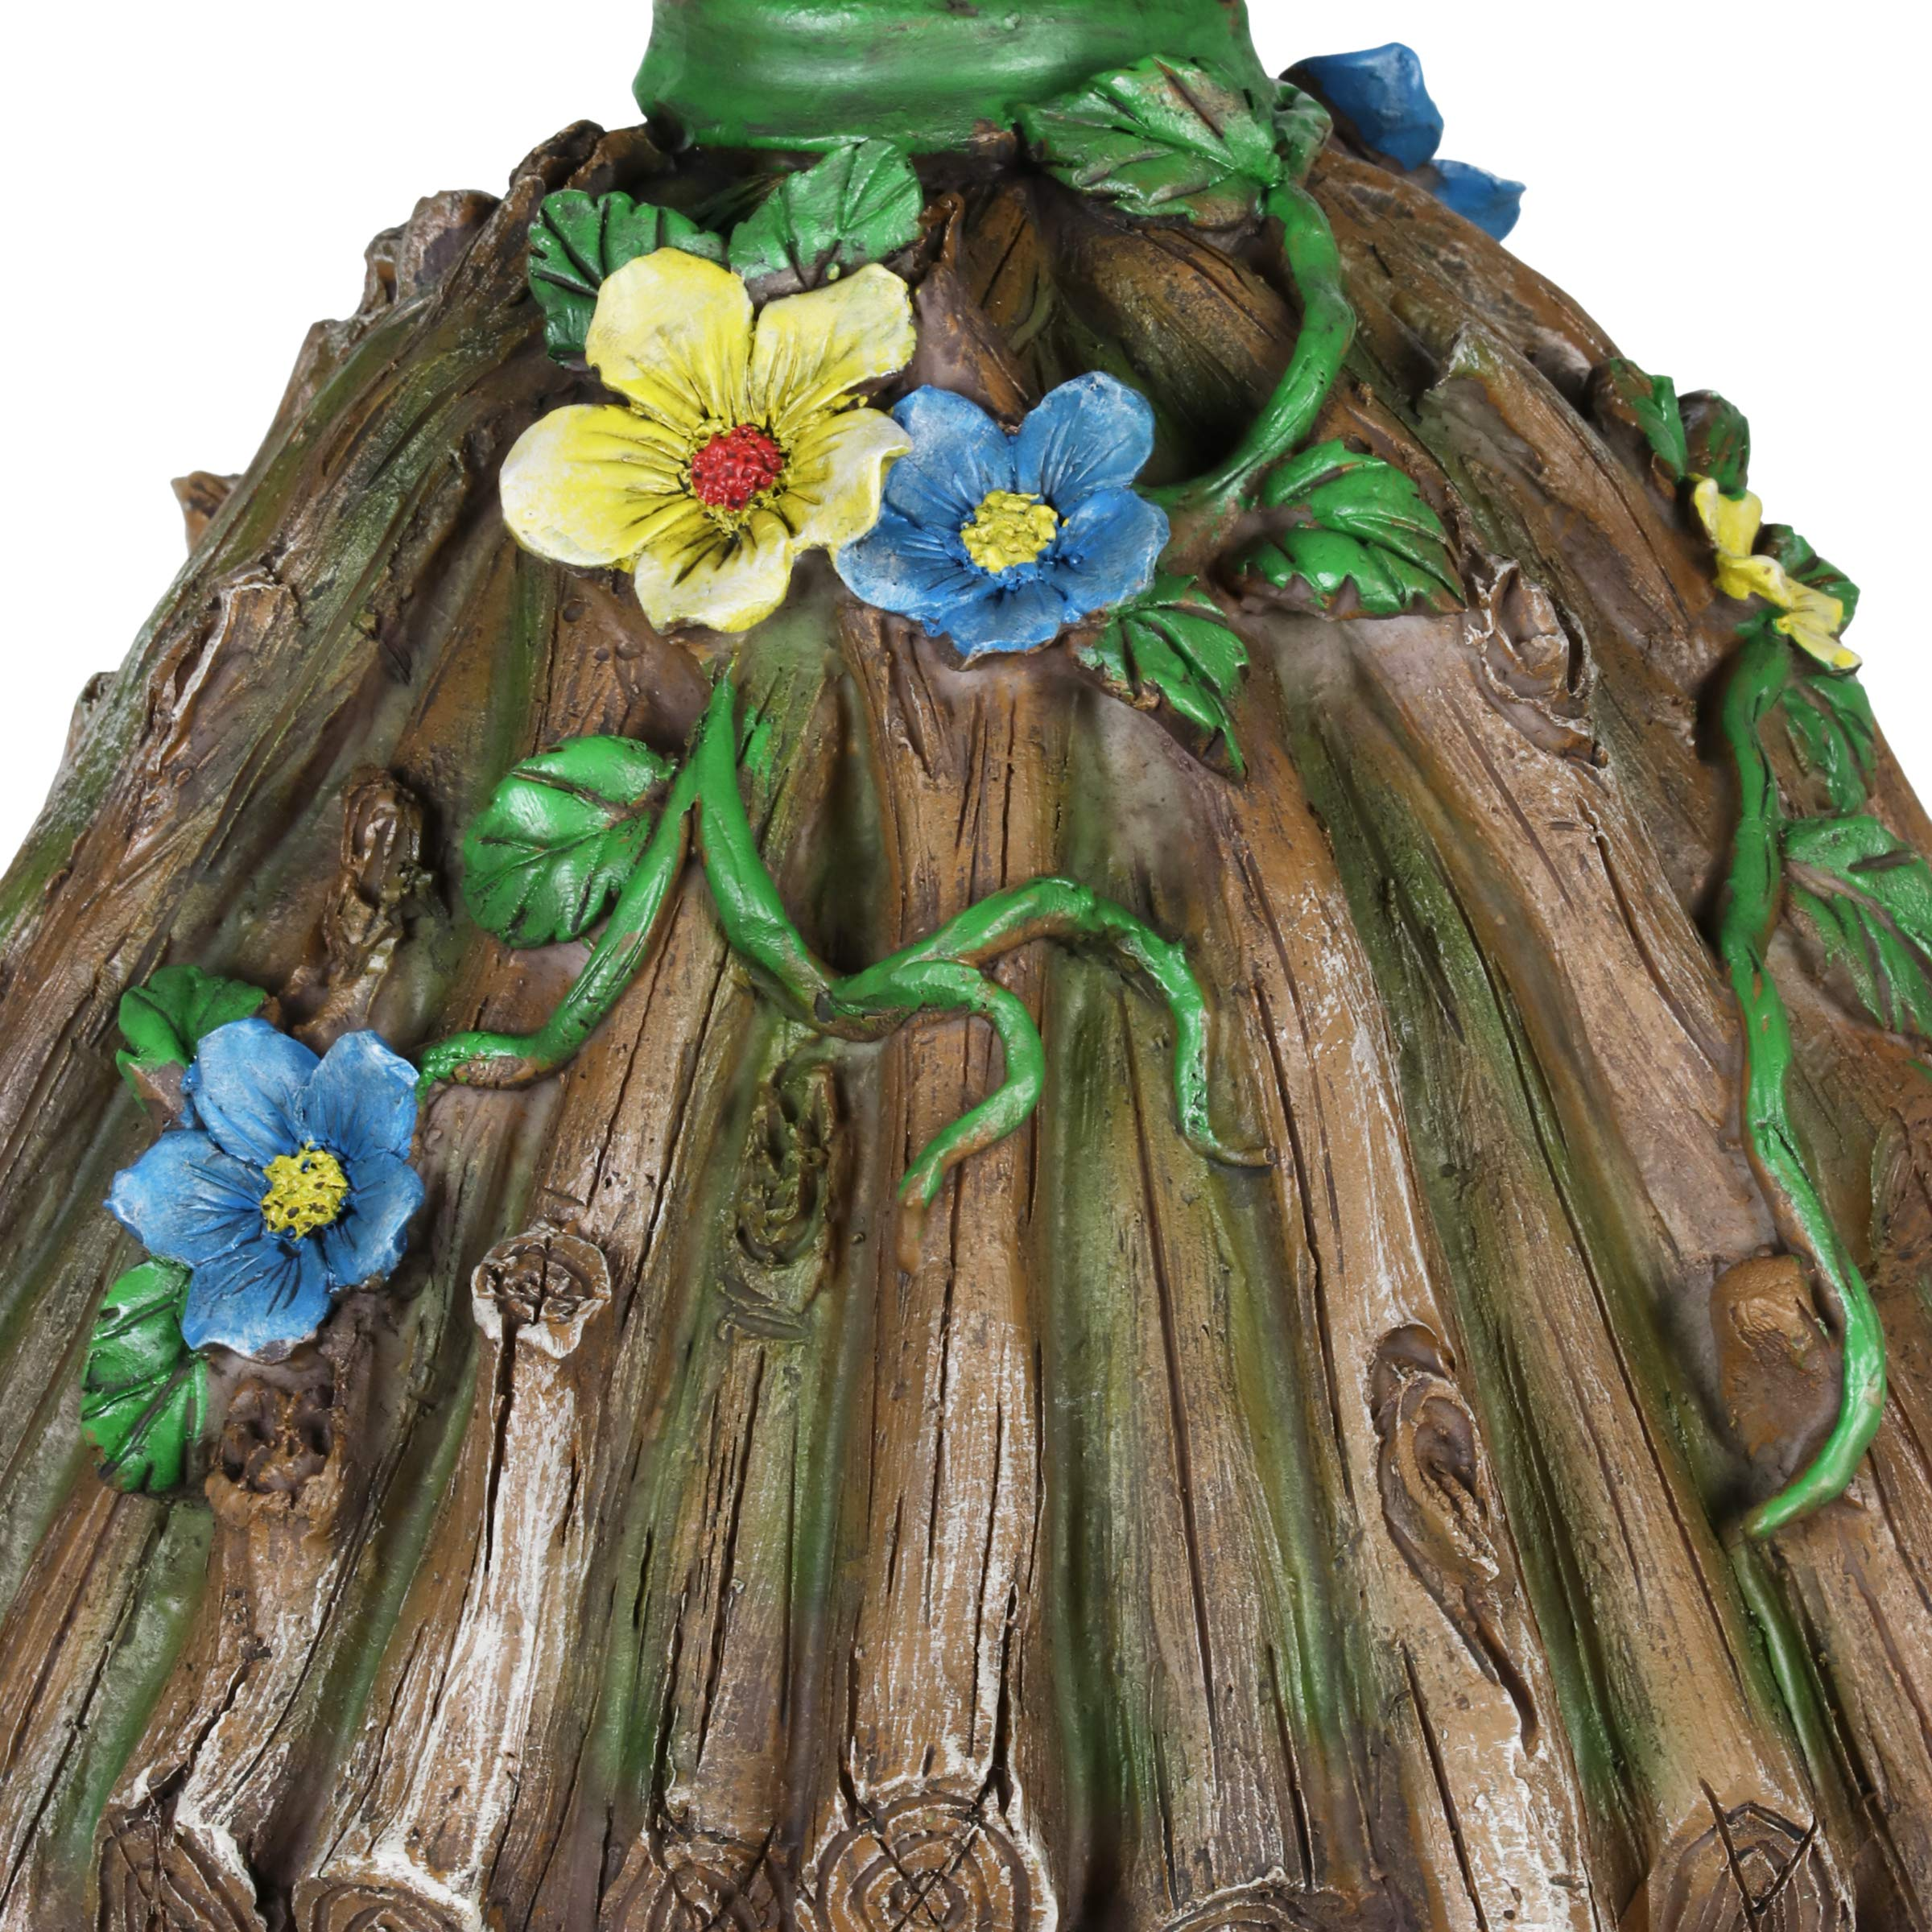 Exhart Twigs Roof Fairy House Outdoor Decor - Fairy Cottage Resin Statue with Solar Garden Lights, Miniature Fairy Hut Solar Home Decor for a Magical Fairy Garden, 9'' L x 9'' W x 15'' H by Exhart (Image #5)